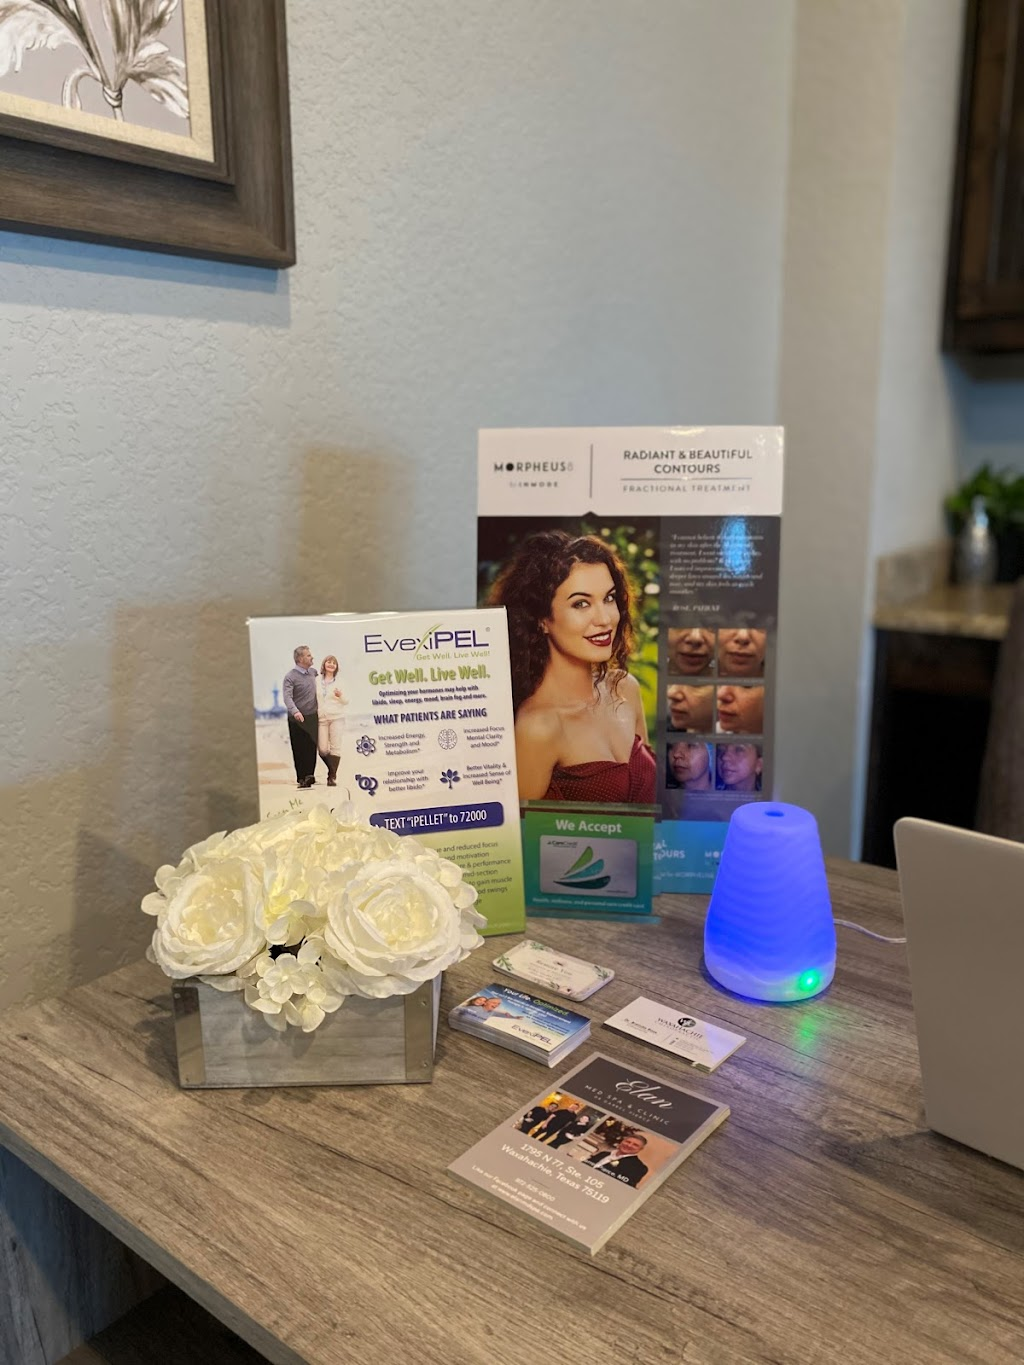 Elan Med Spa & Clinic - spa  | Photo 7 of 10 | Address: 1795 N Hwy 77 Suite 105, Waxahachie, TX 75165, USA | Phone: (972) 525-0800